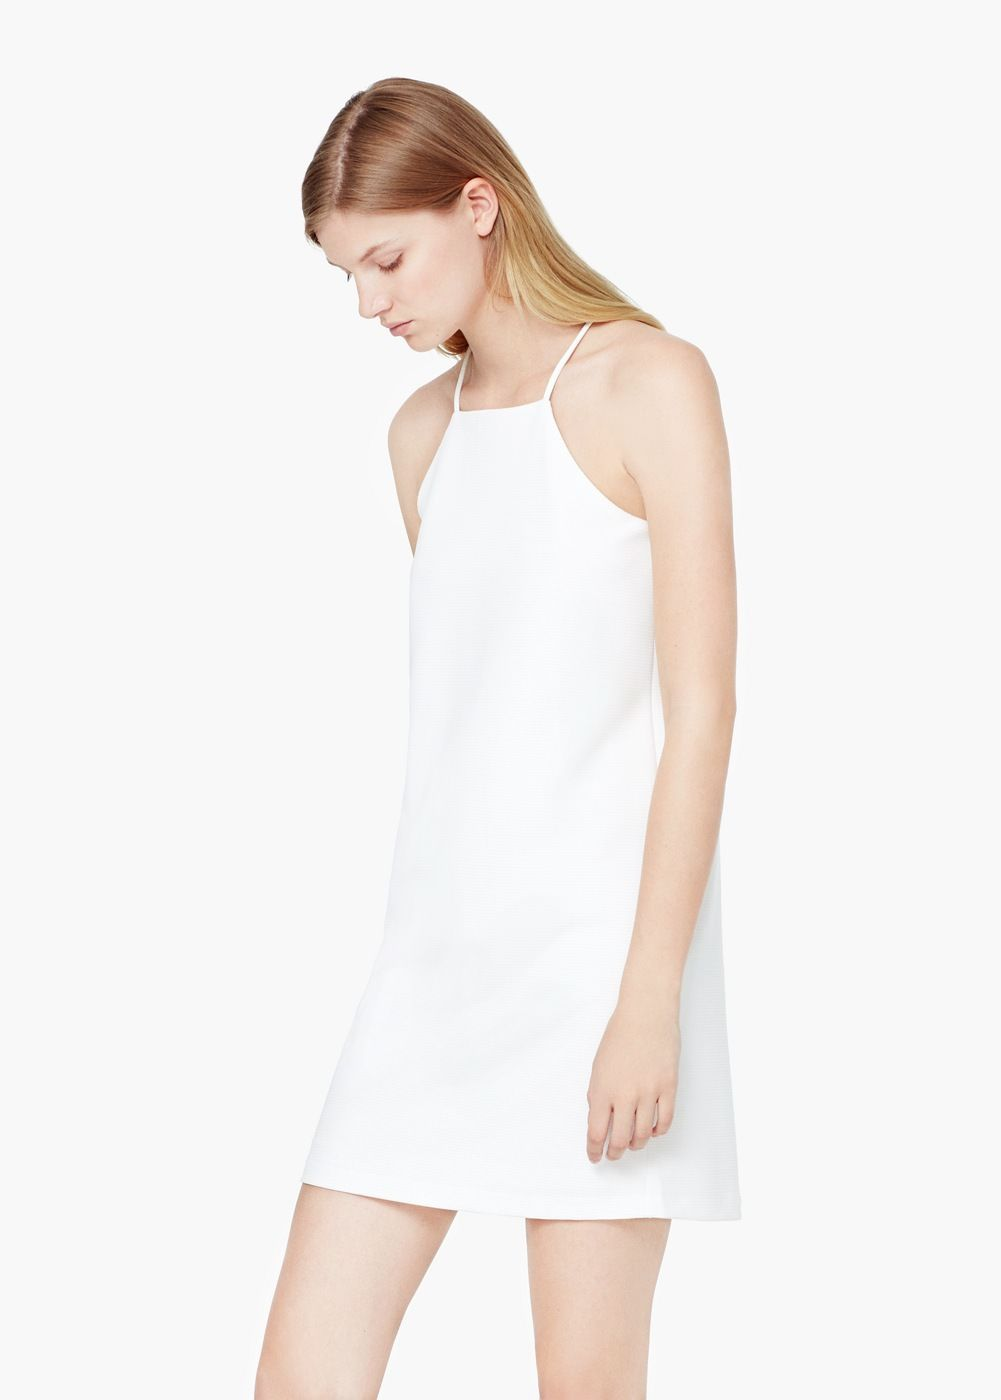 Textured dress women dresses dresses expensive taste and clothes